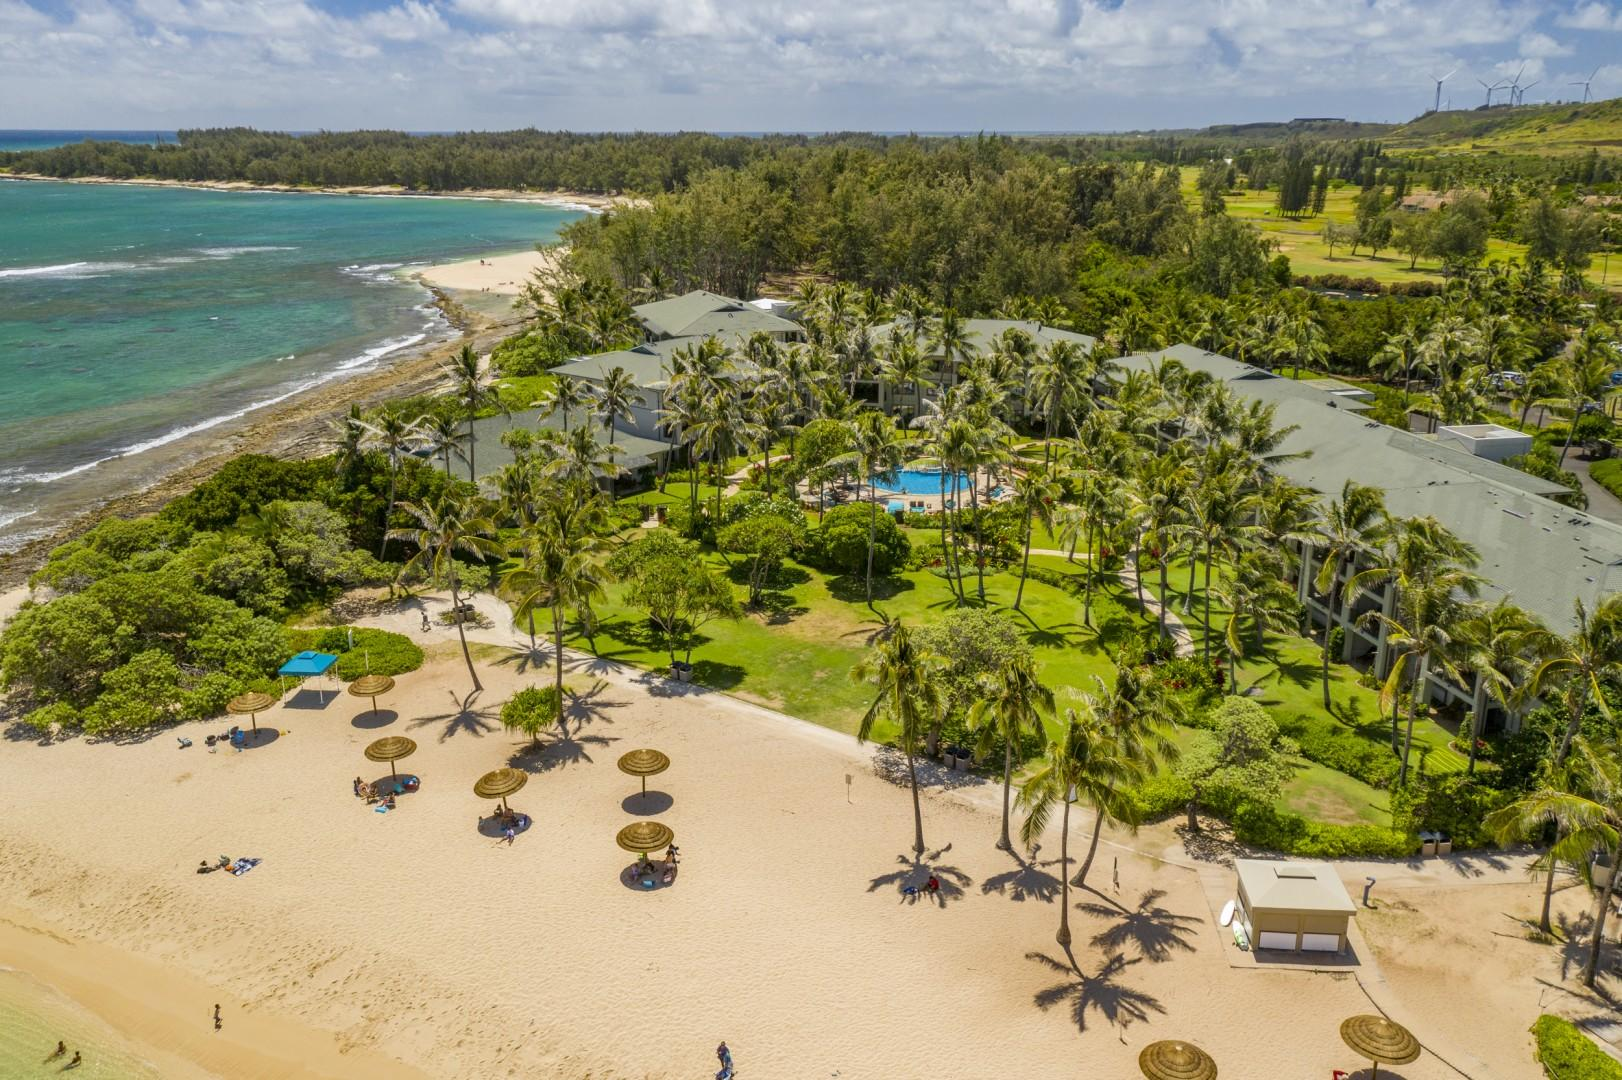 Kuilima Cove & Bay View Beach Lawn